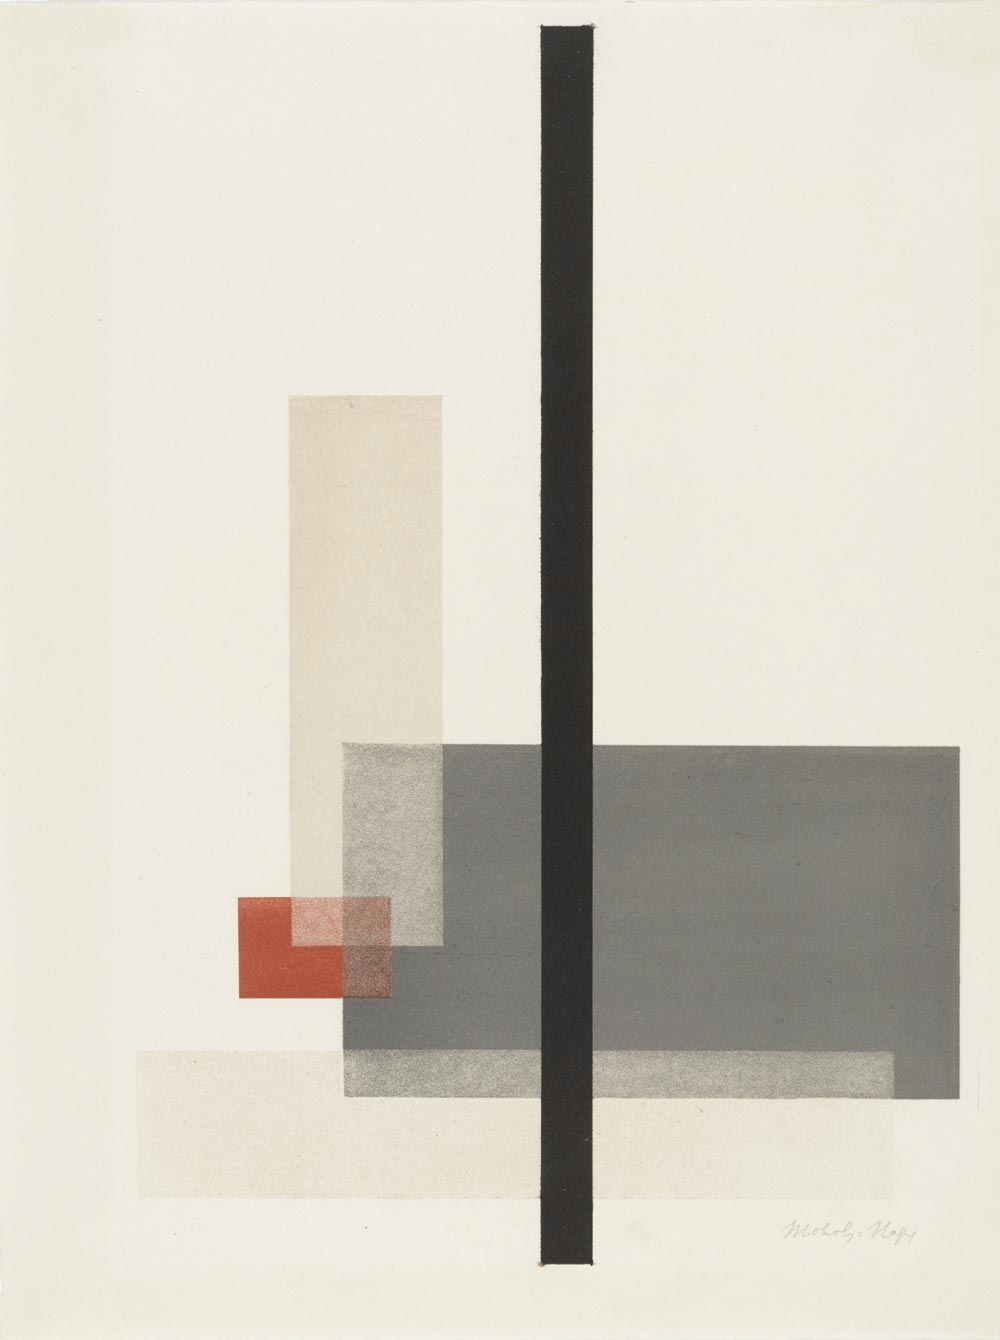 Composition from Masters' Portfolio of the Staatliches Bauhaus by László Moholy-Nagy (1923)